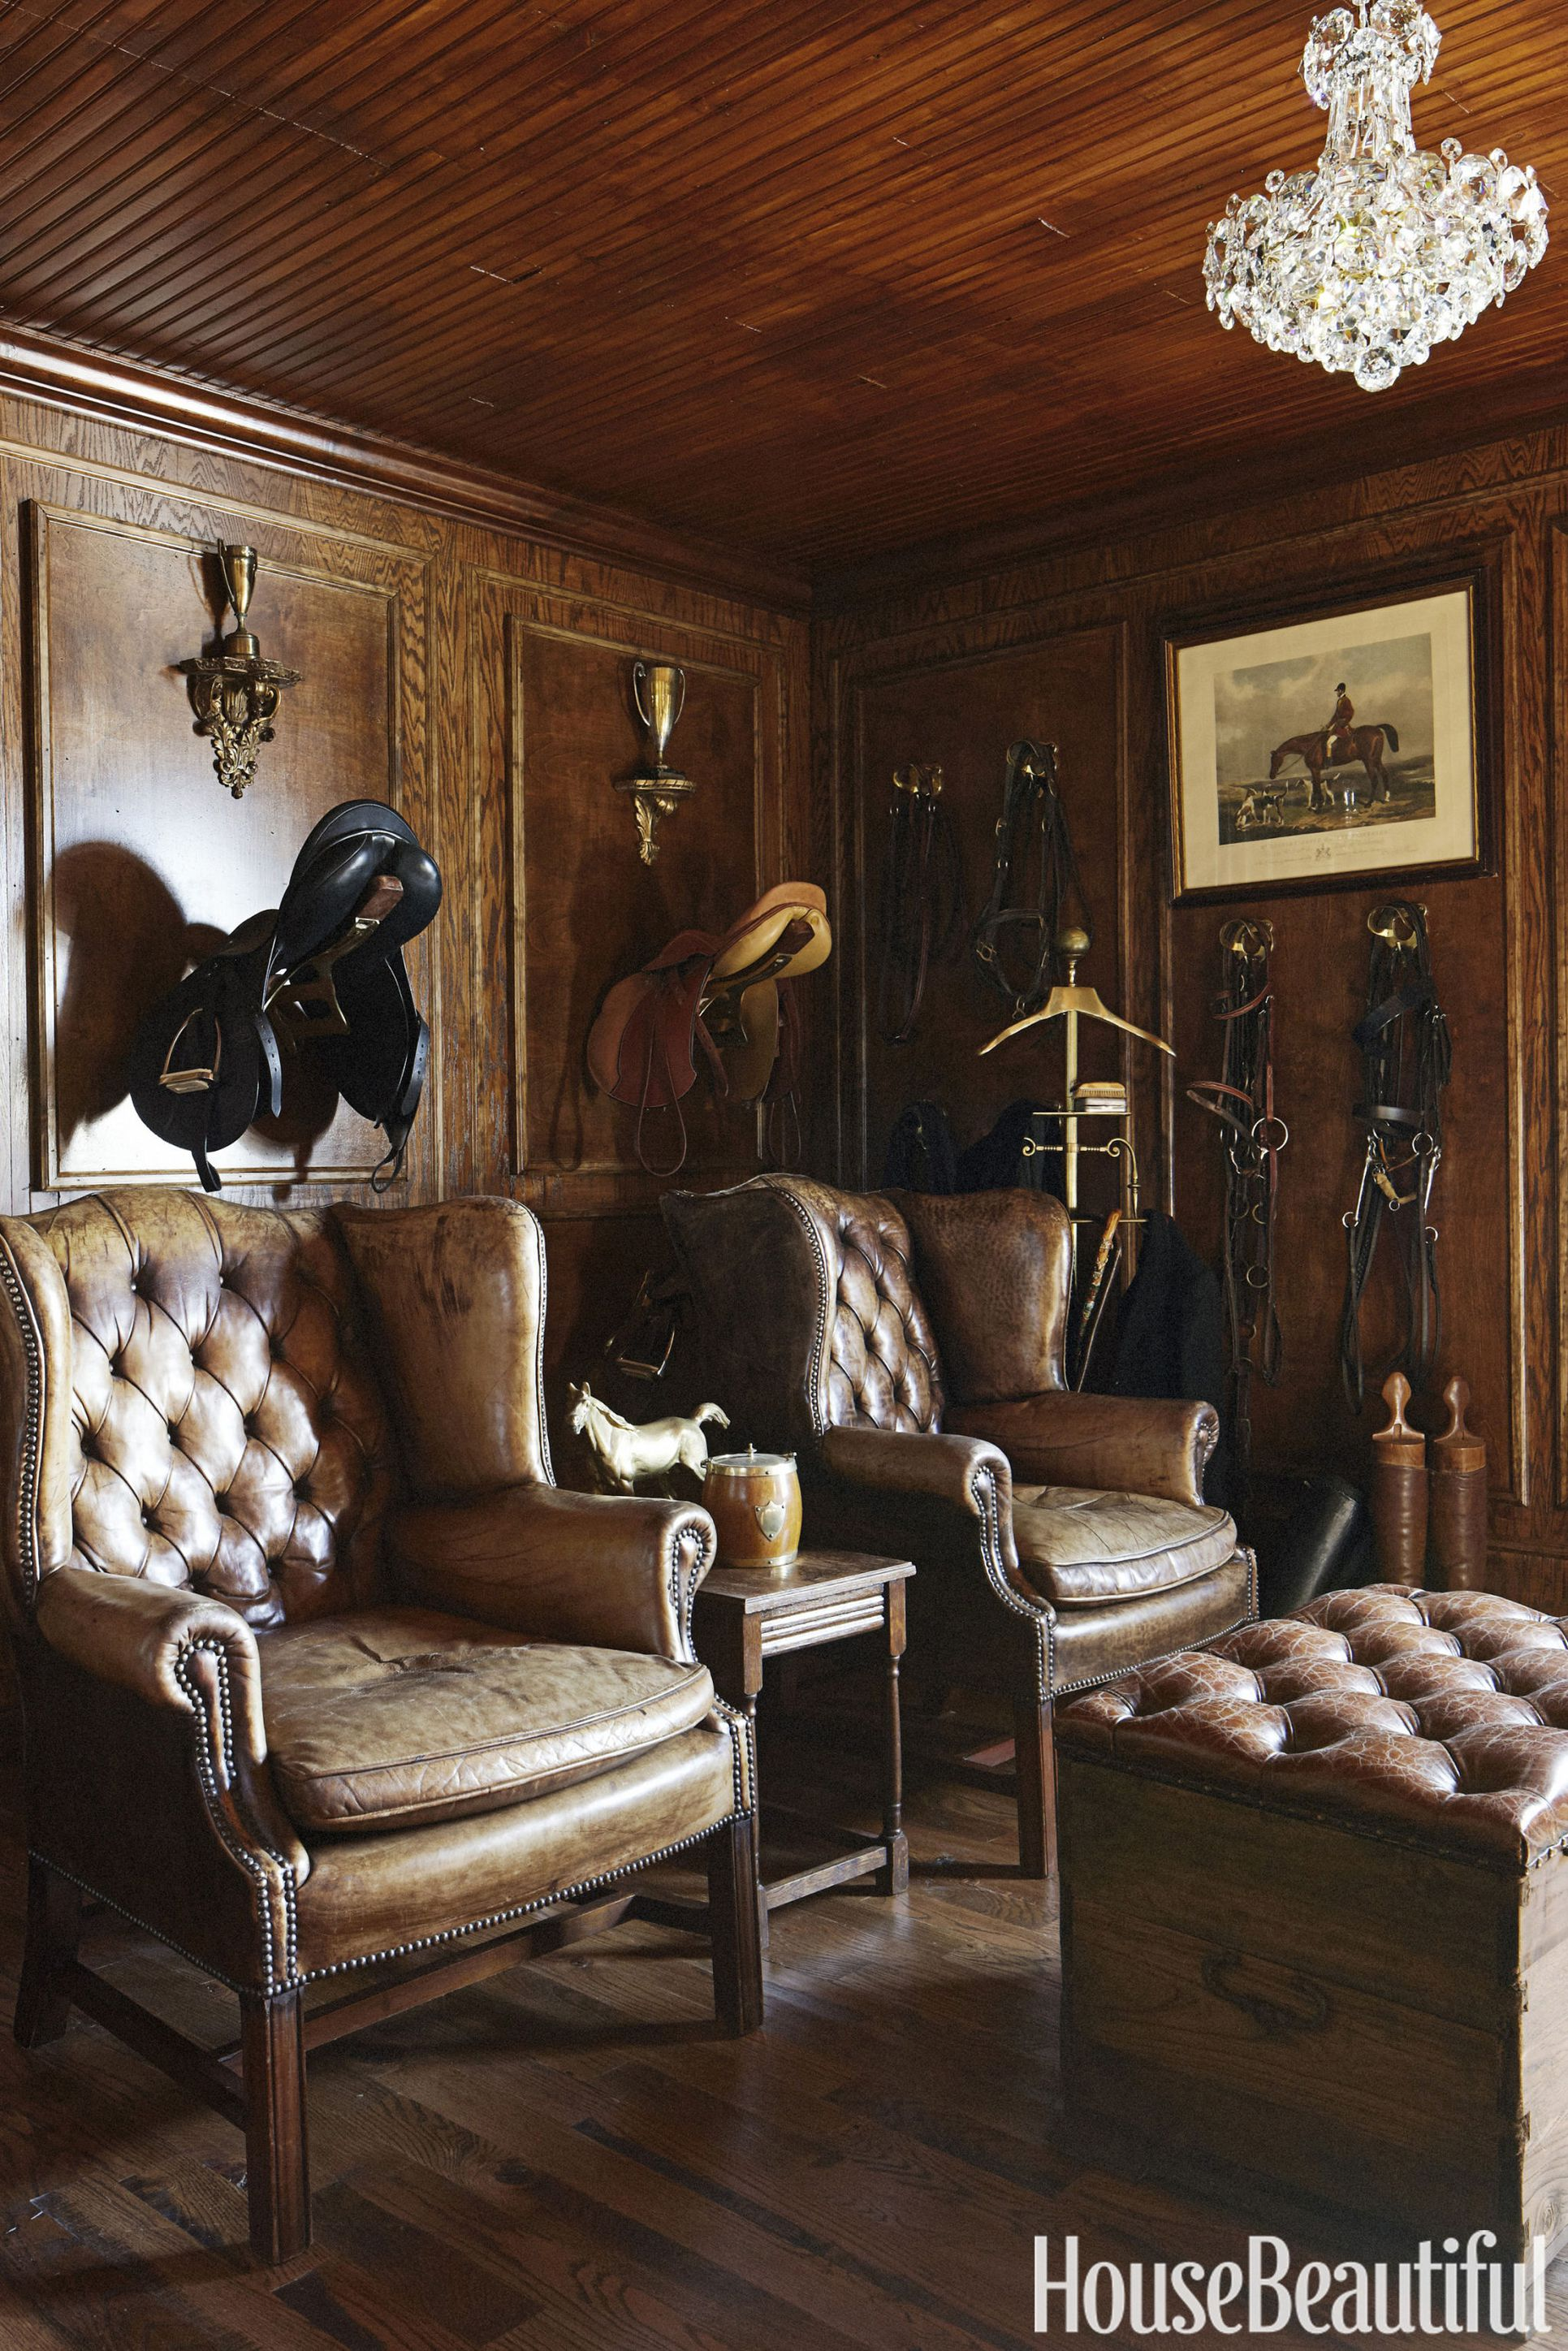 annie-brahler-smith-leather-wing-chairs-0617.jpg